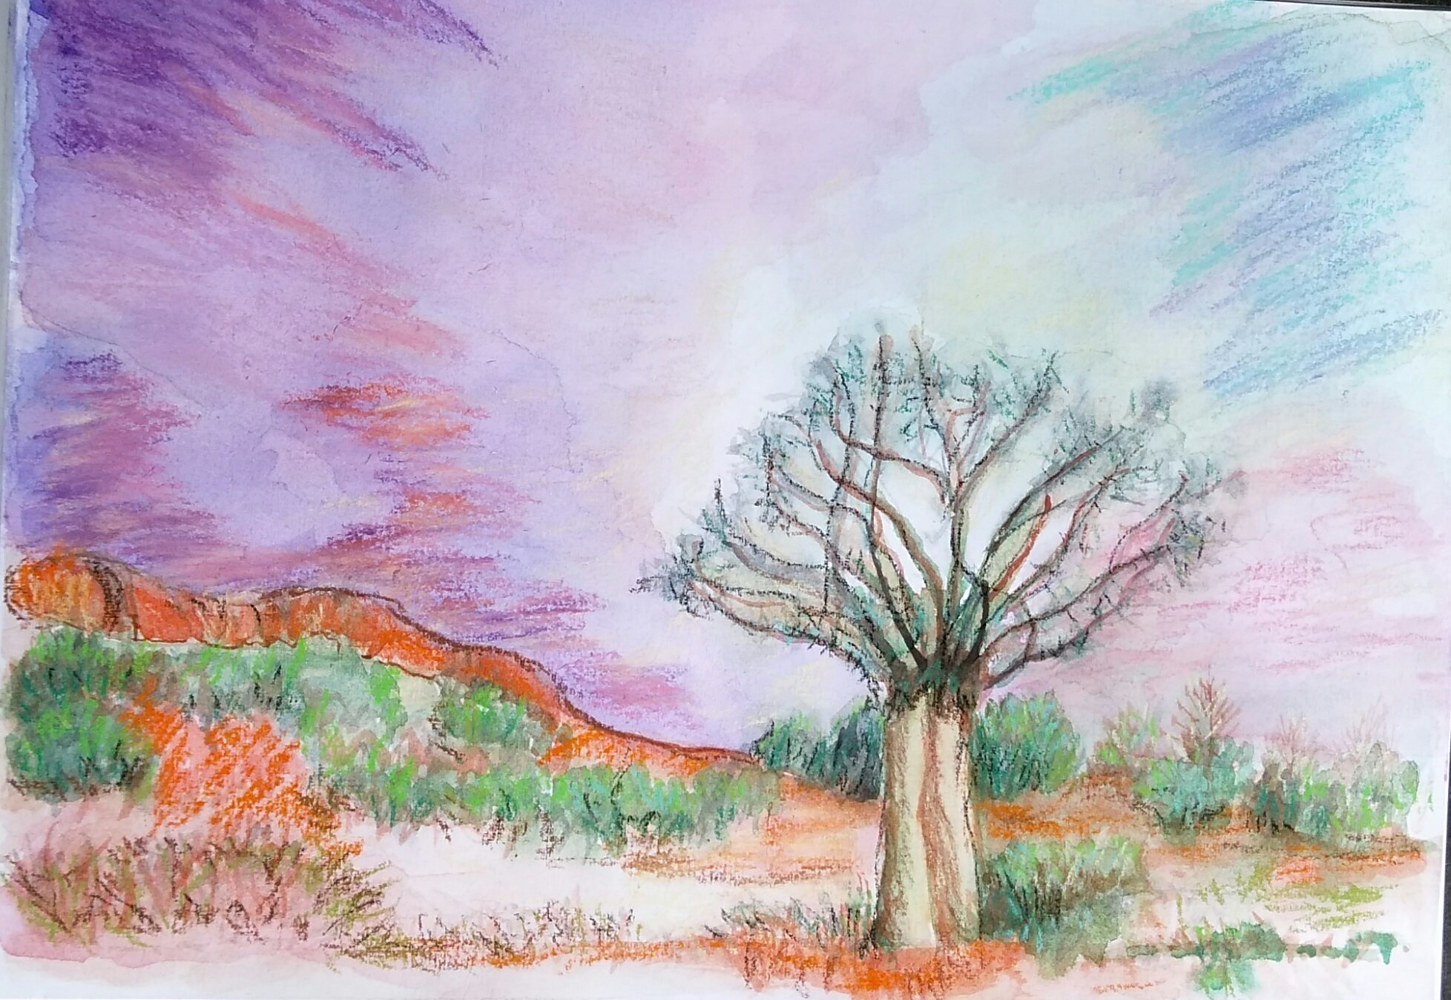 Watercolor Brilliance in the outback by Gwenda Branjerdporn